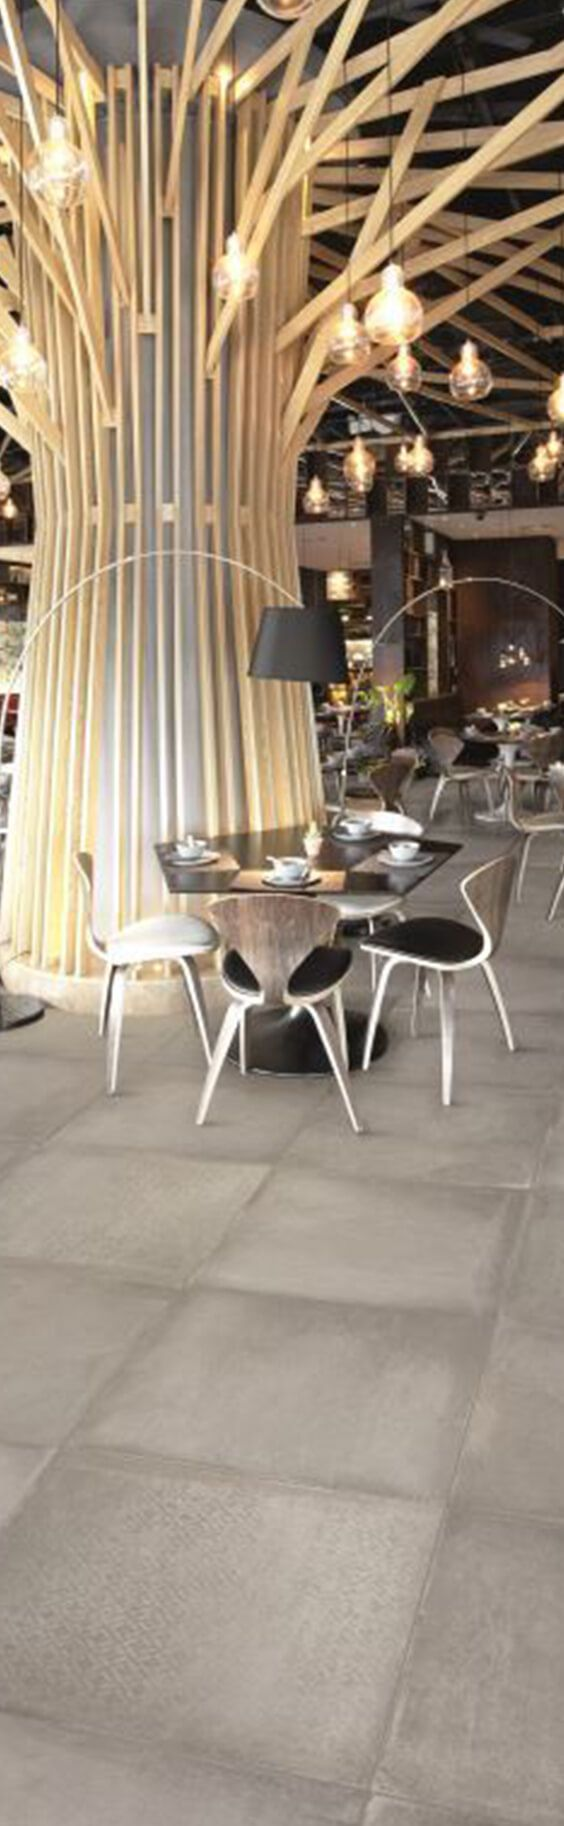 Make a great first impression in your #restaurant with #natural #stone: http://bit.ly/2eokO4N